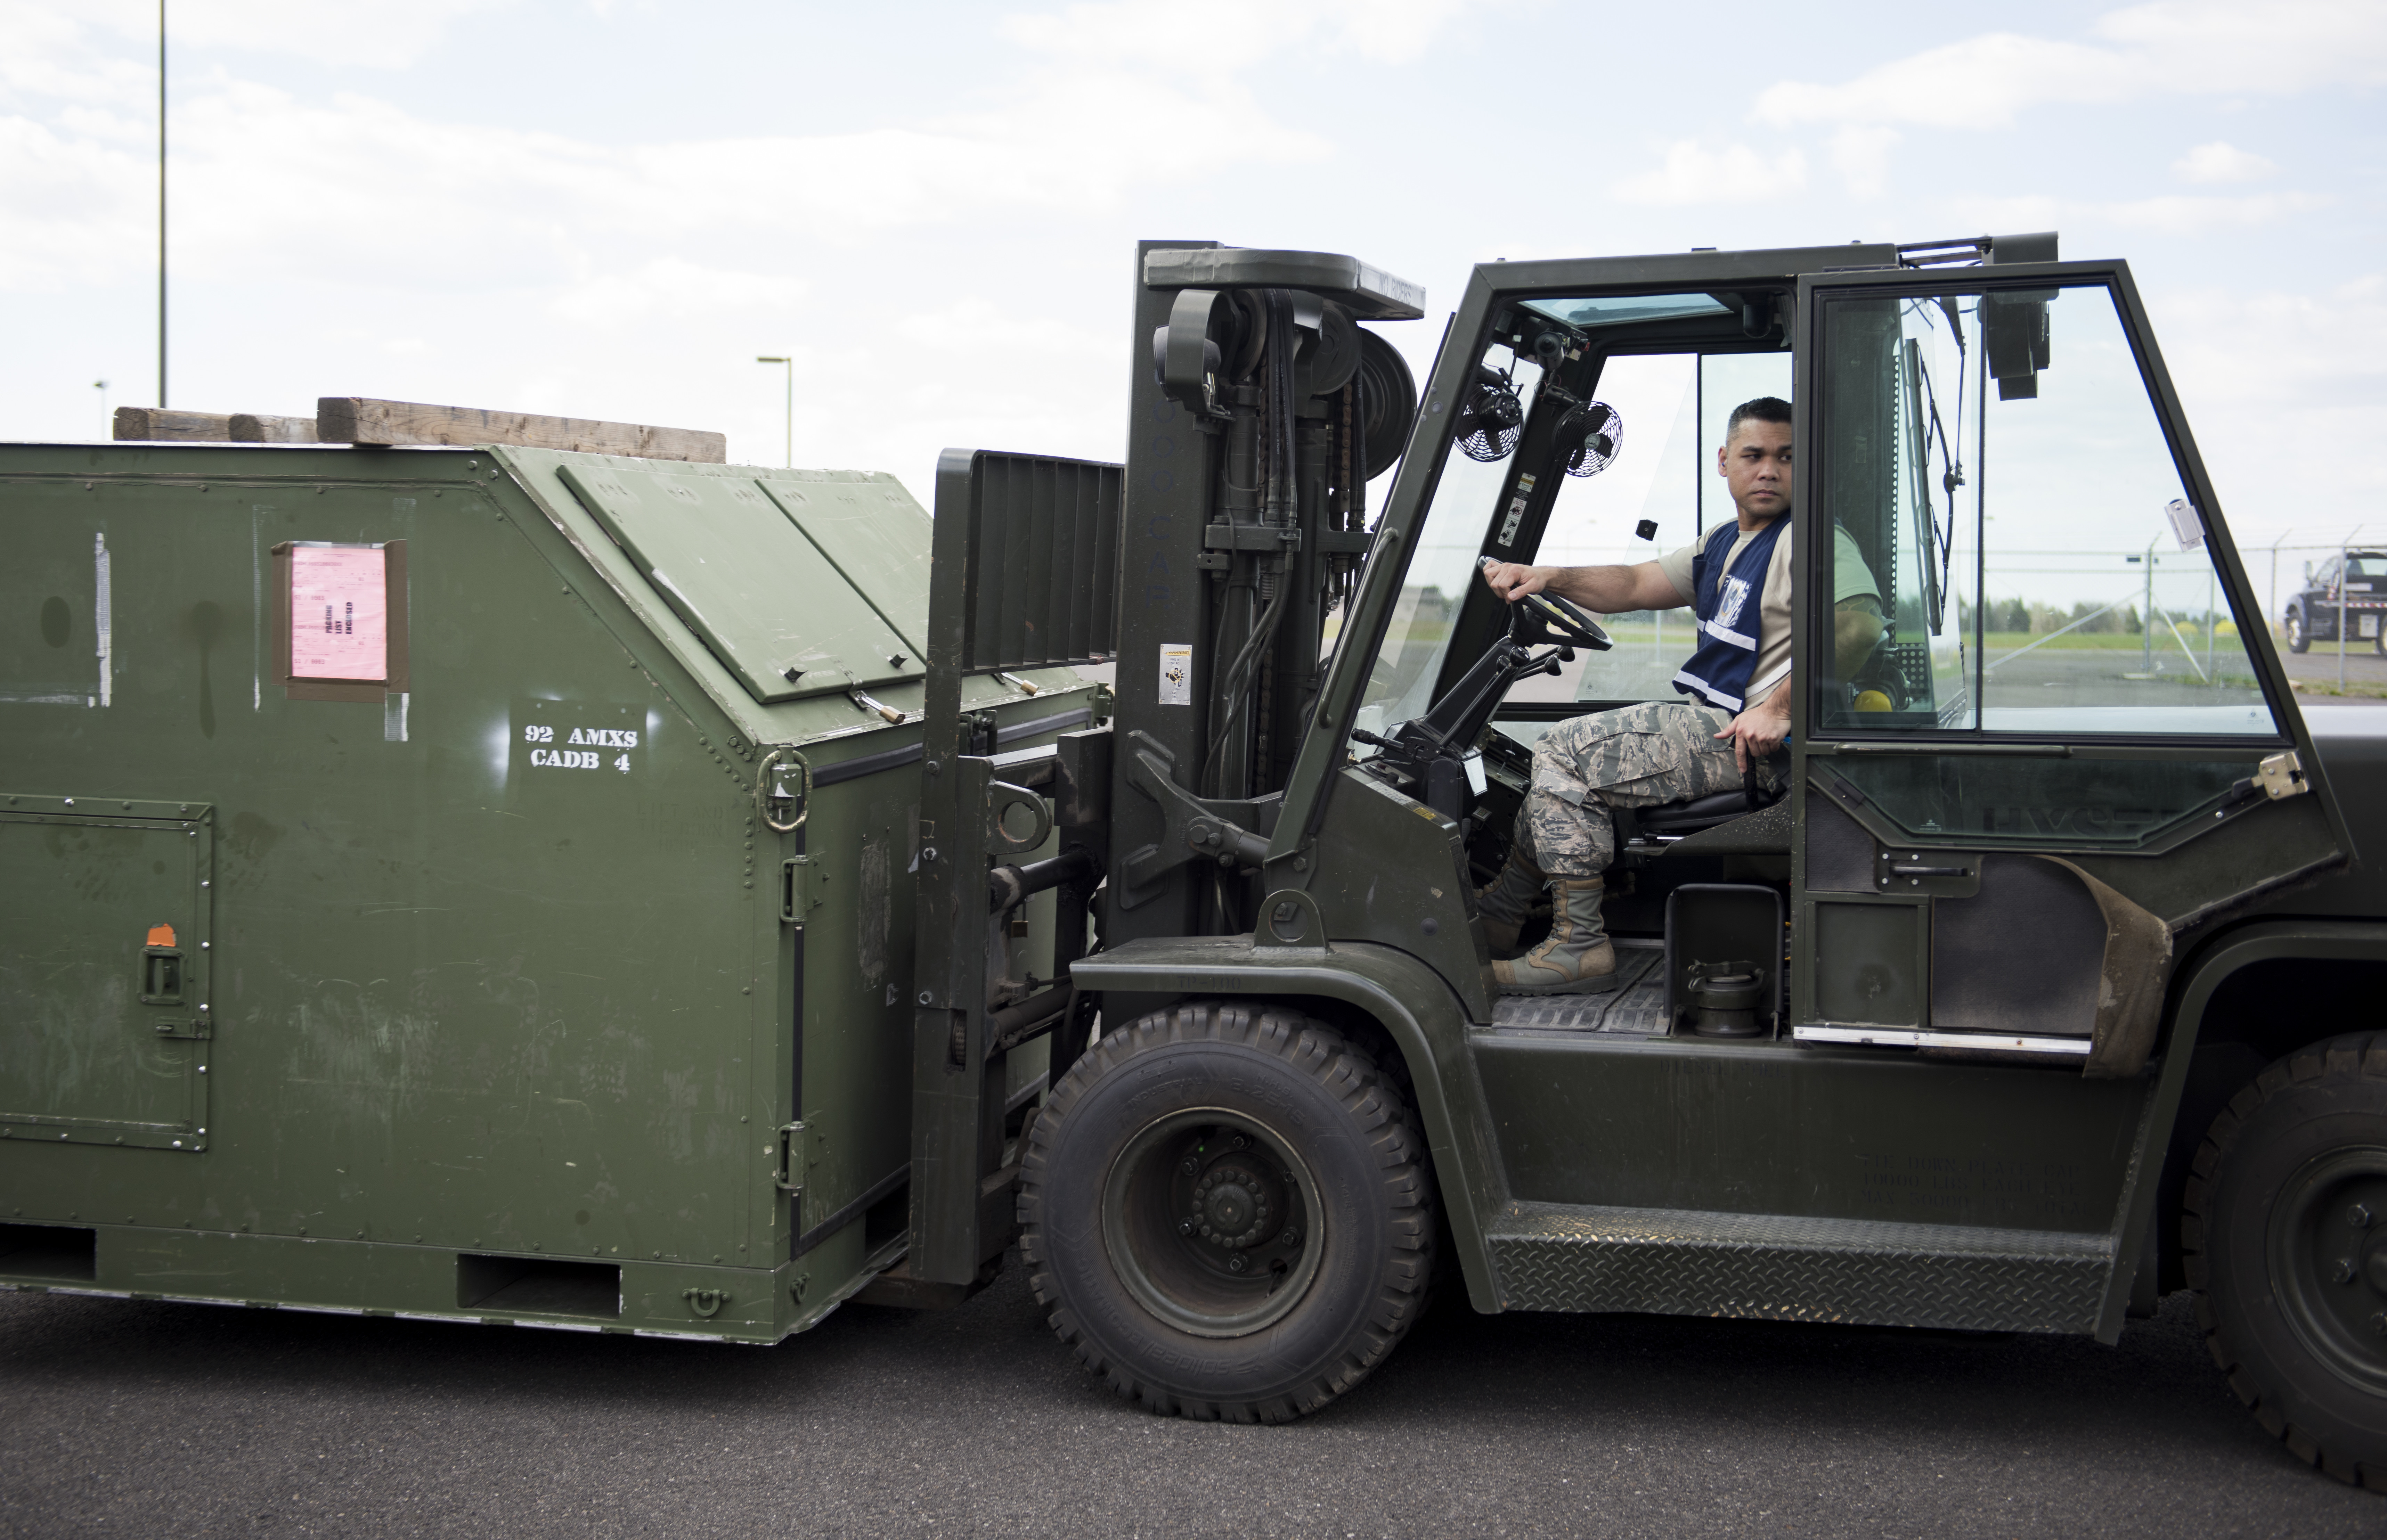 Tech Sgt Jaymhar Caoile 92nd Logistics Readiness Squadron Assistant Resource Advisor Operates